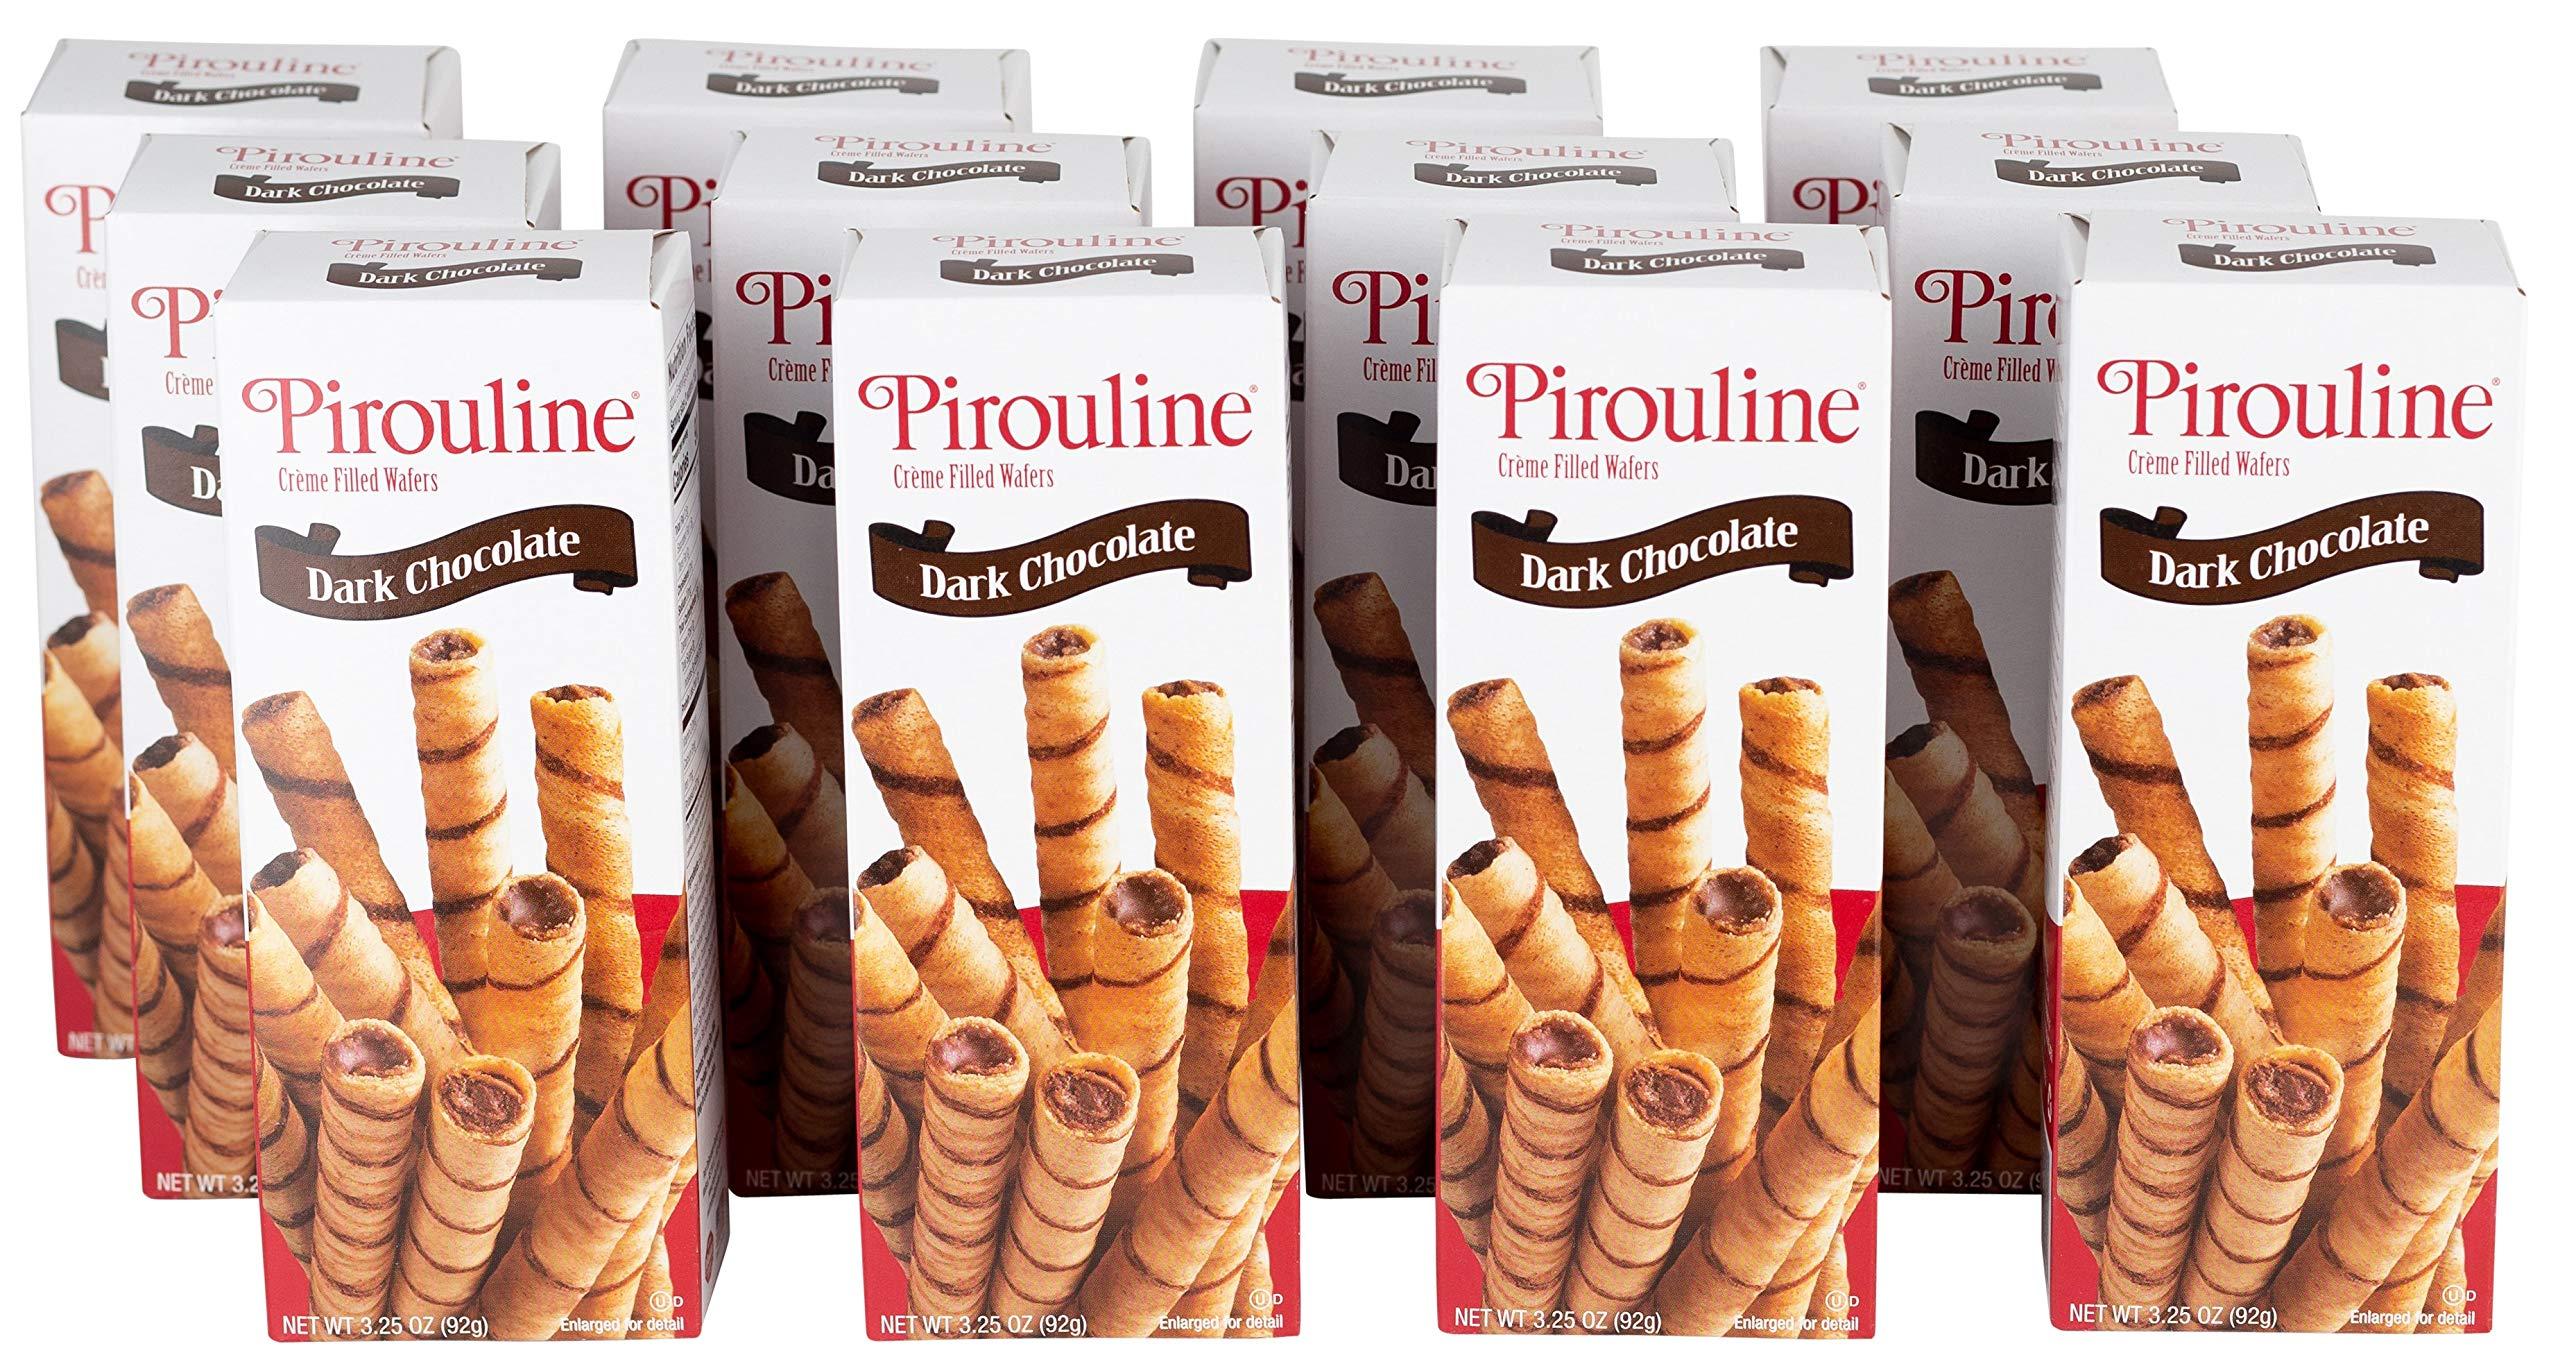 Pirouline Rolled Wafers, Dark Chocolate, 3.25 Ounce Cartons (Pack of 12)